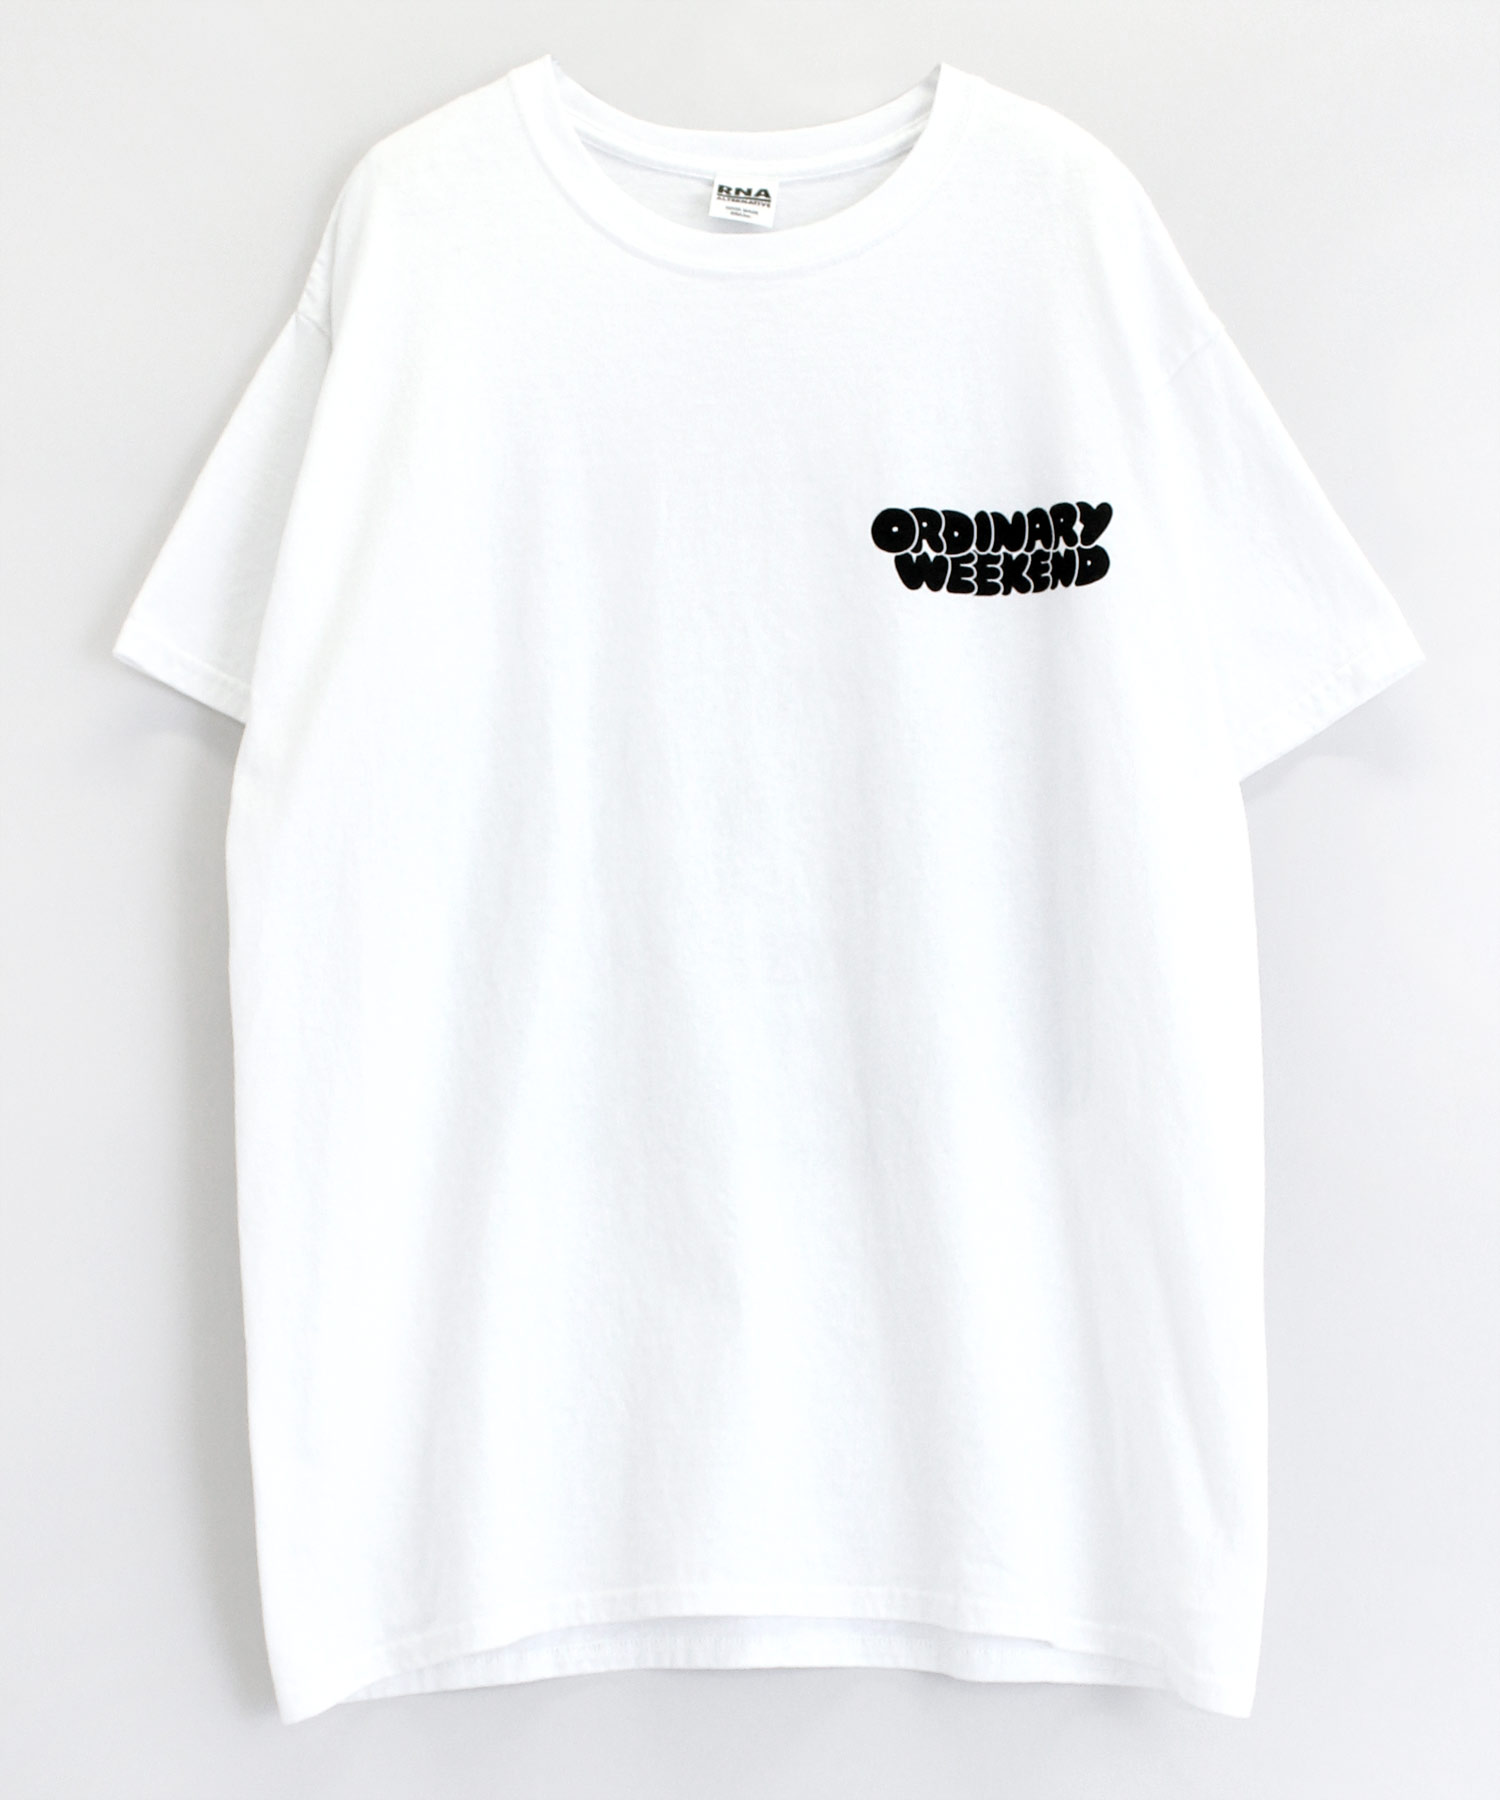 M1152 WEEKEND BIG Tシャツ